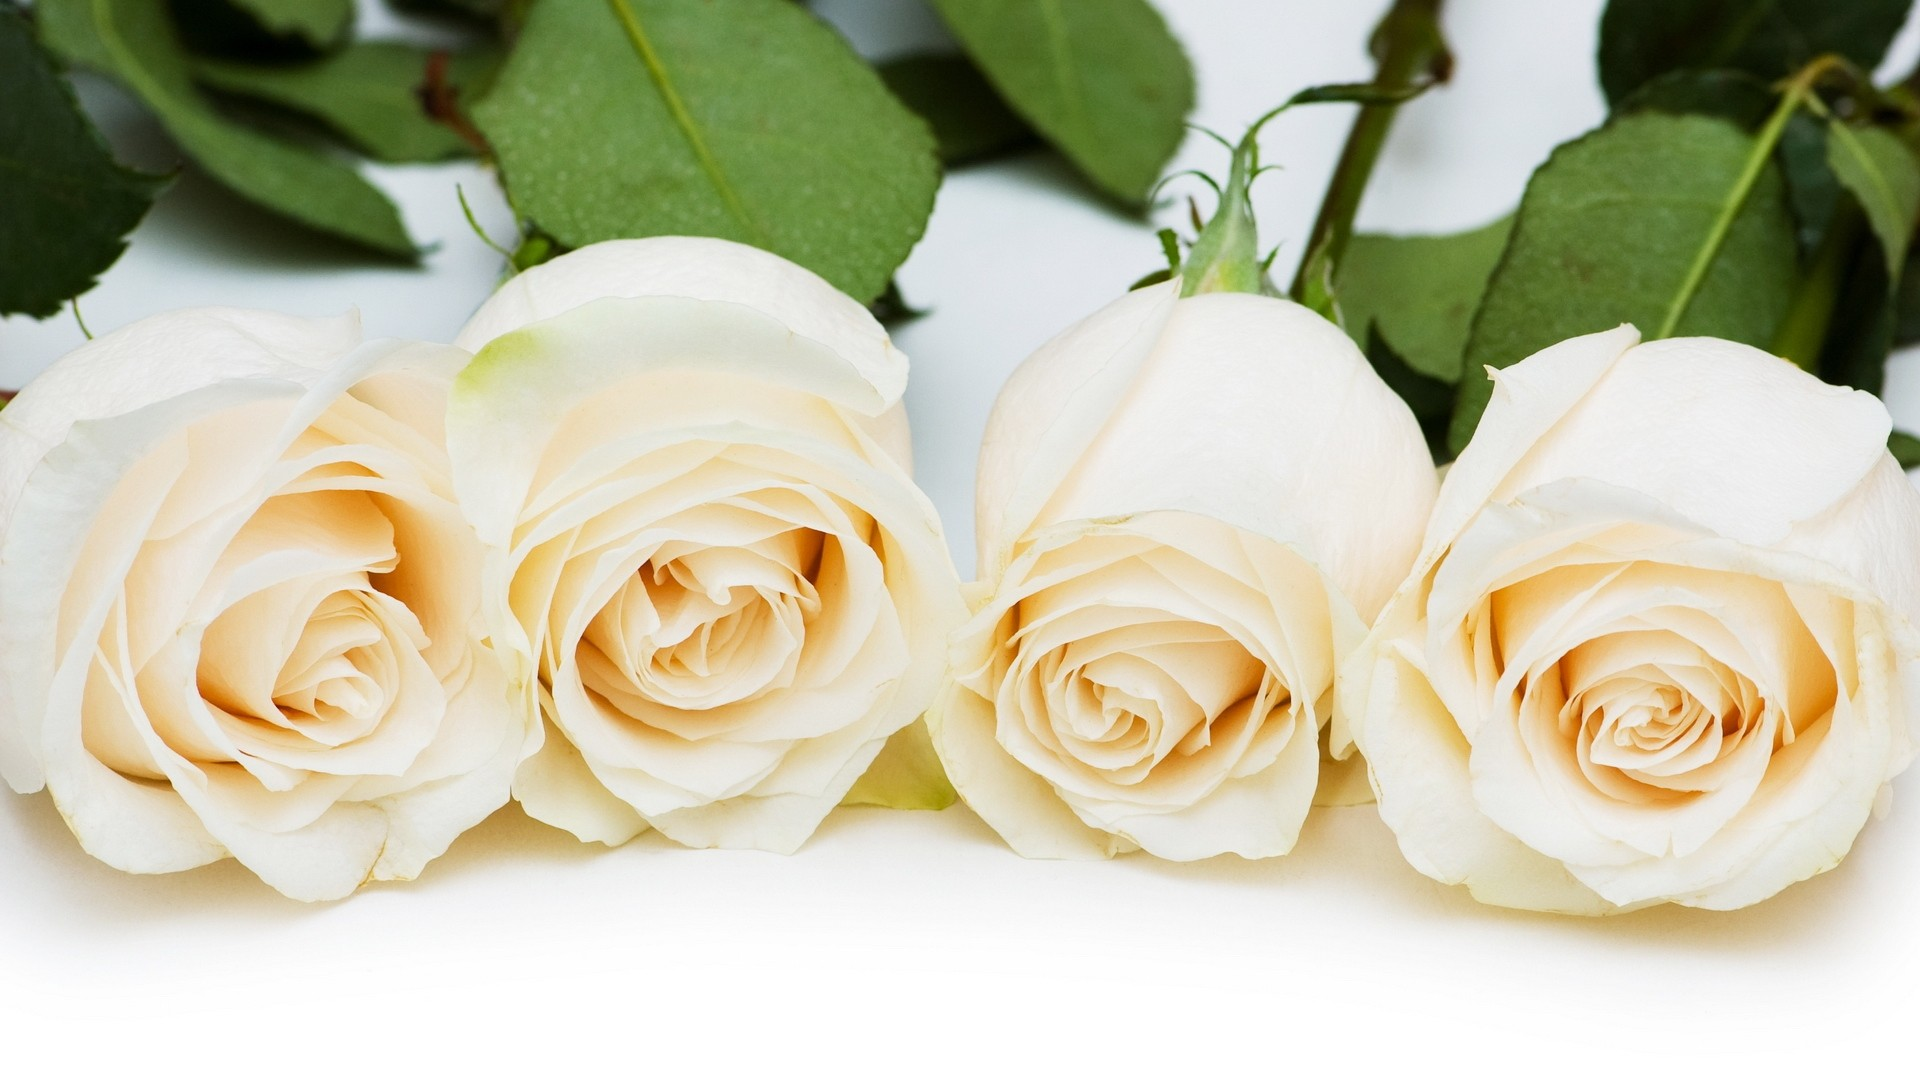 White Rose HD Wallpapers8